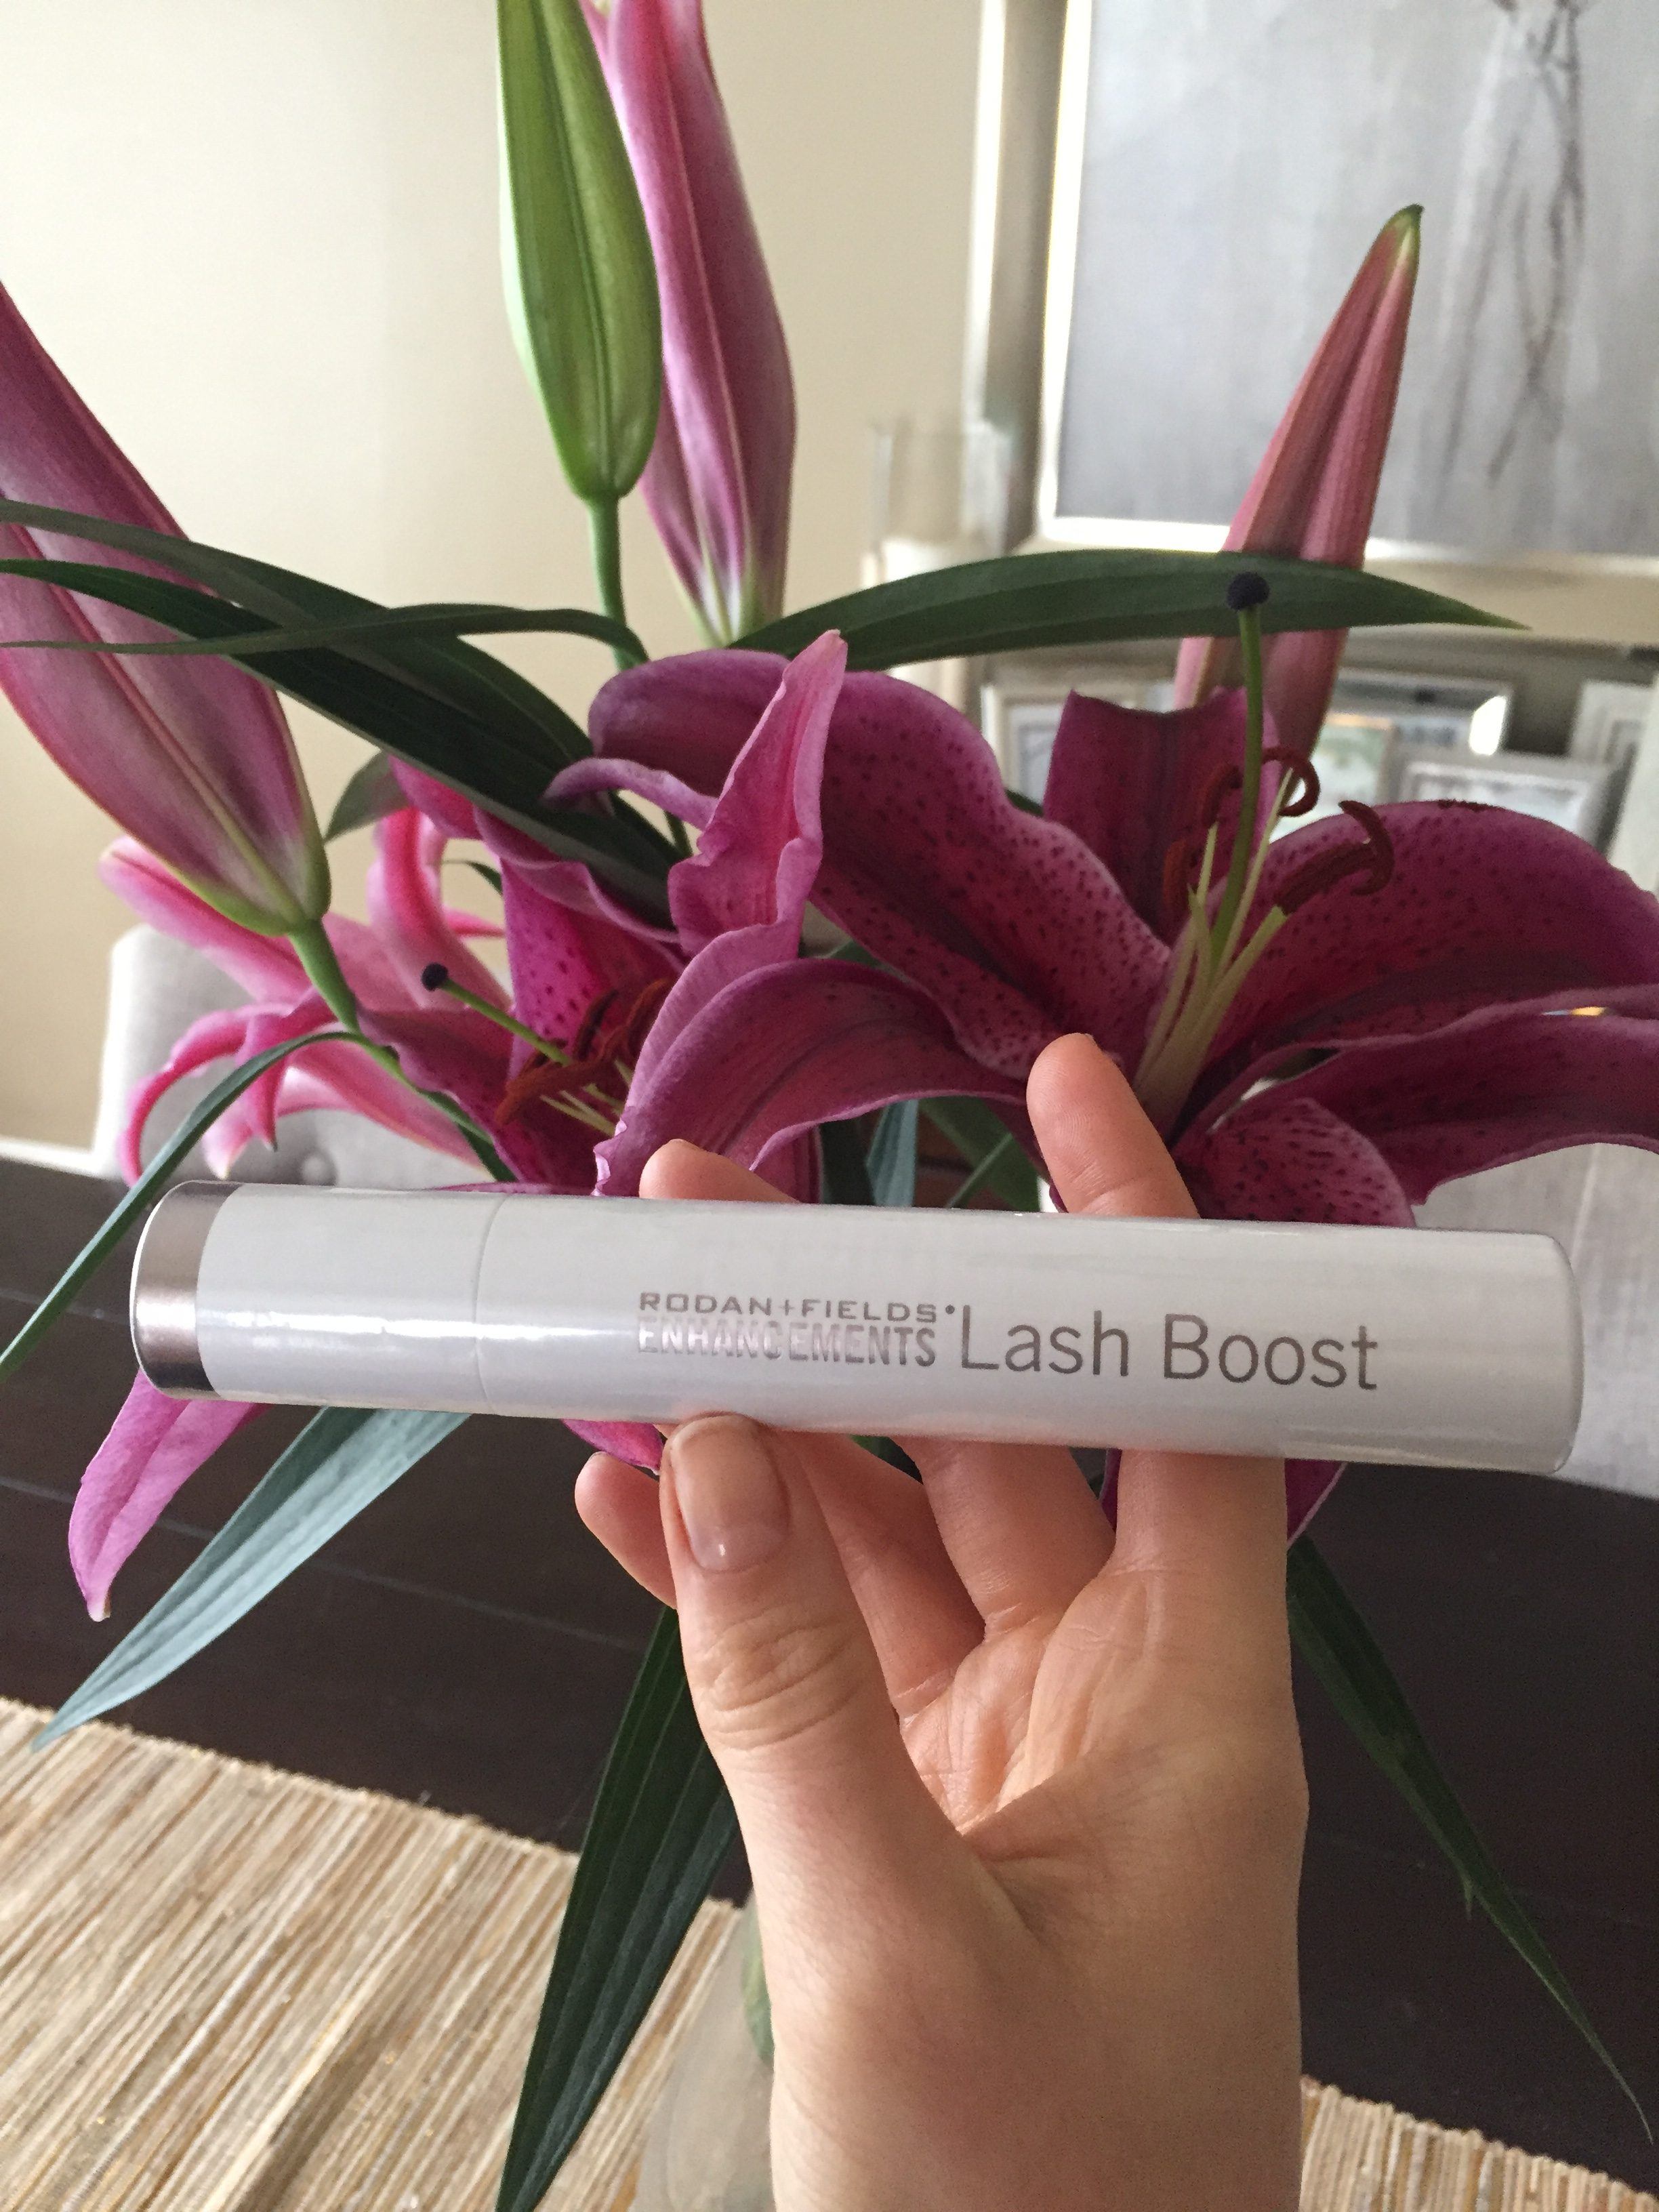 lashboost is the best eyelash serum